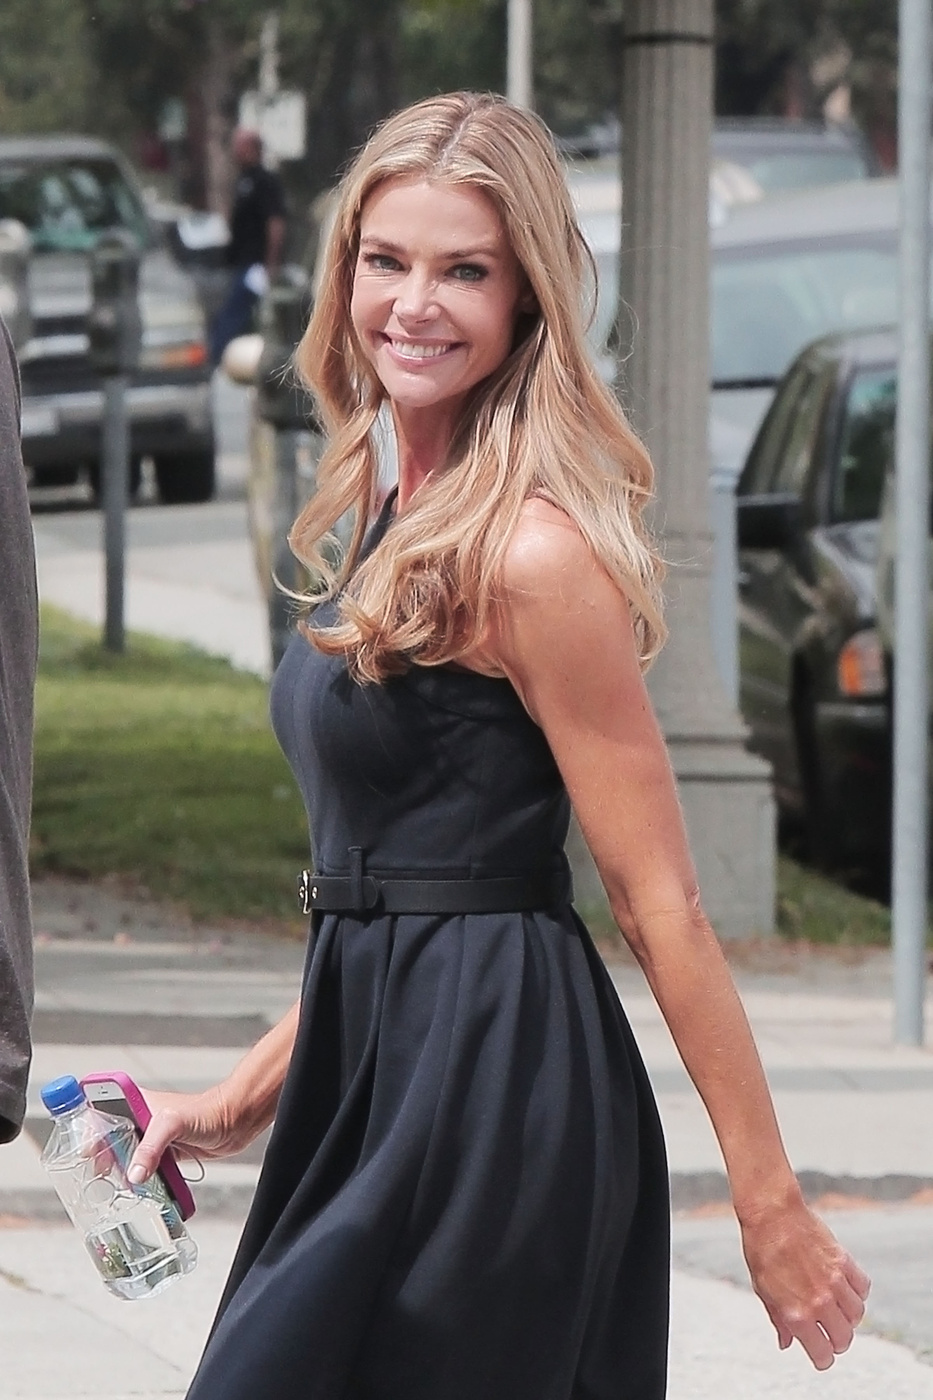 Denise Richards arrives for the first day on the set of new TV pilot 'Twisted' in Los Angeles